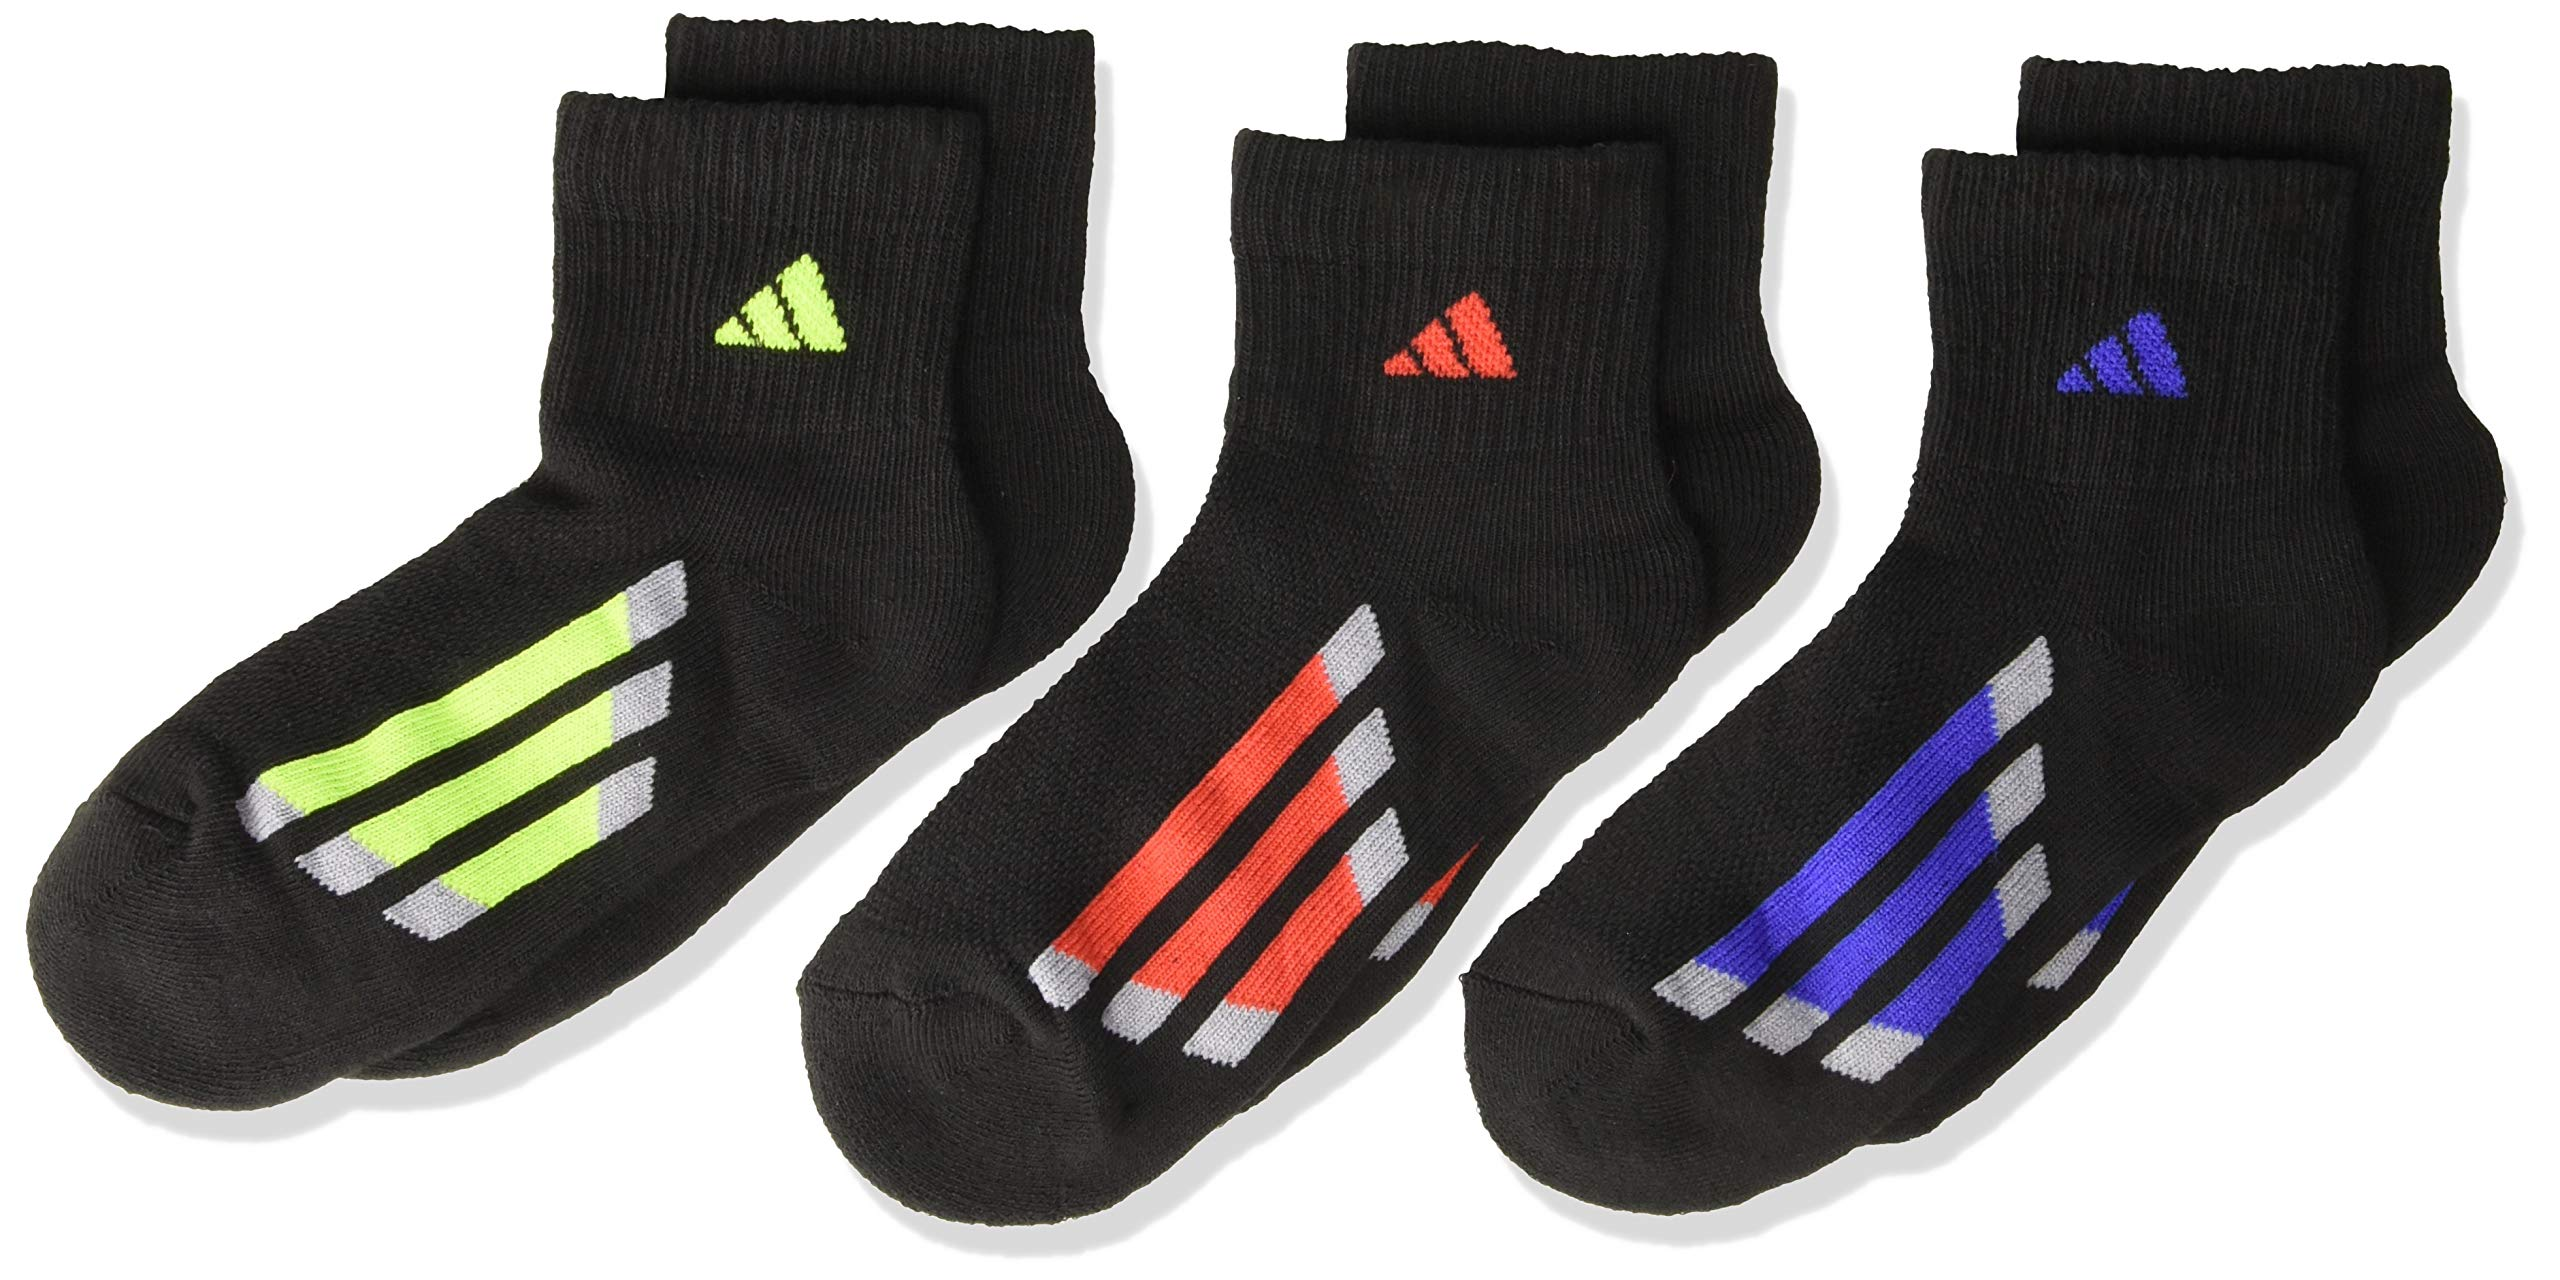 adidas Youth Kids-Boy's/Girl's Cushioned Quarter Socks (6-Pair), Black/Active Blue/Light Onix Black/Active Red/Ligh, Medium, (Shoe Size 13C-4Y) by adidas